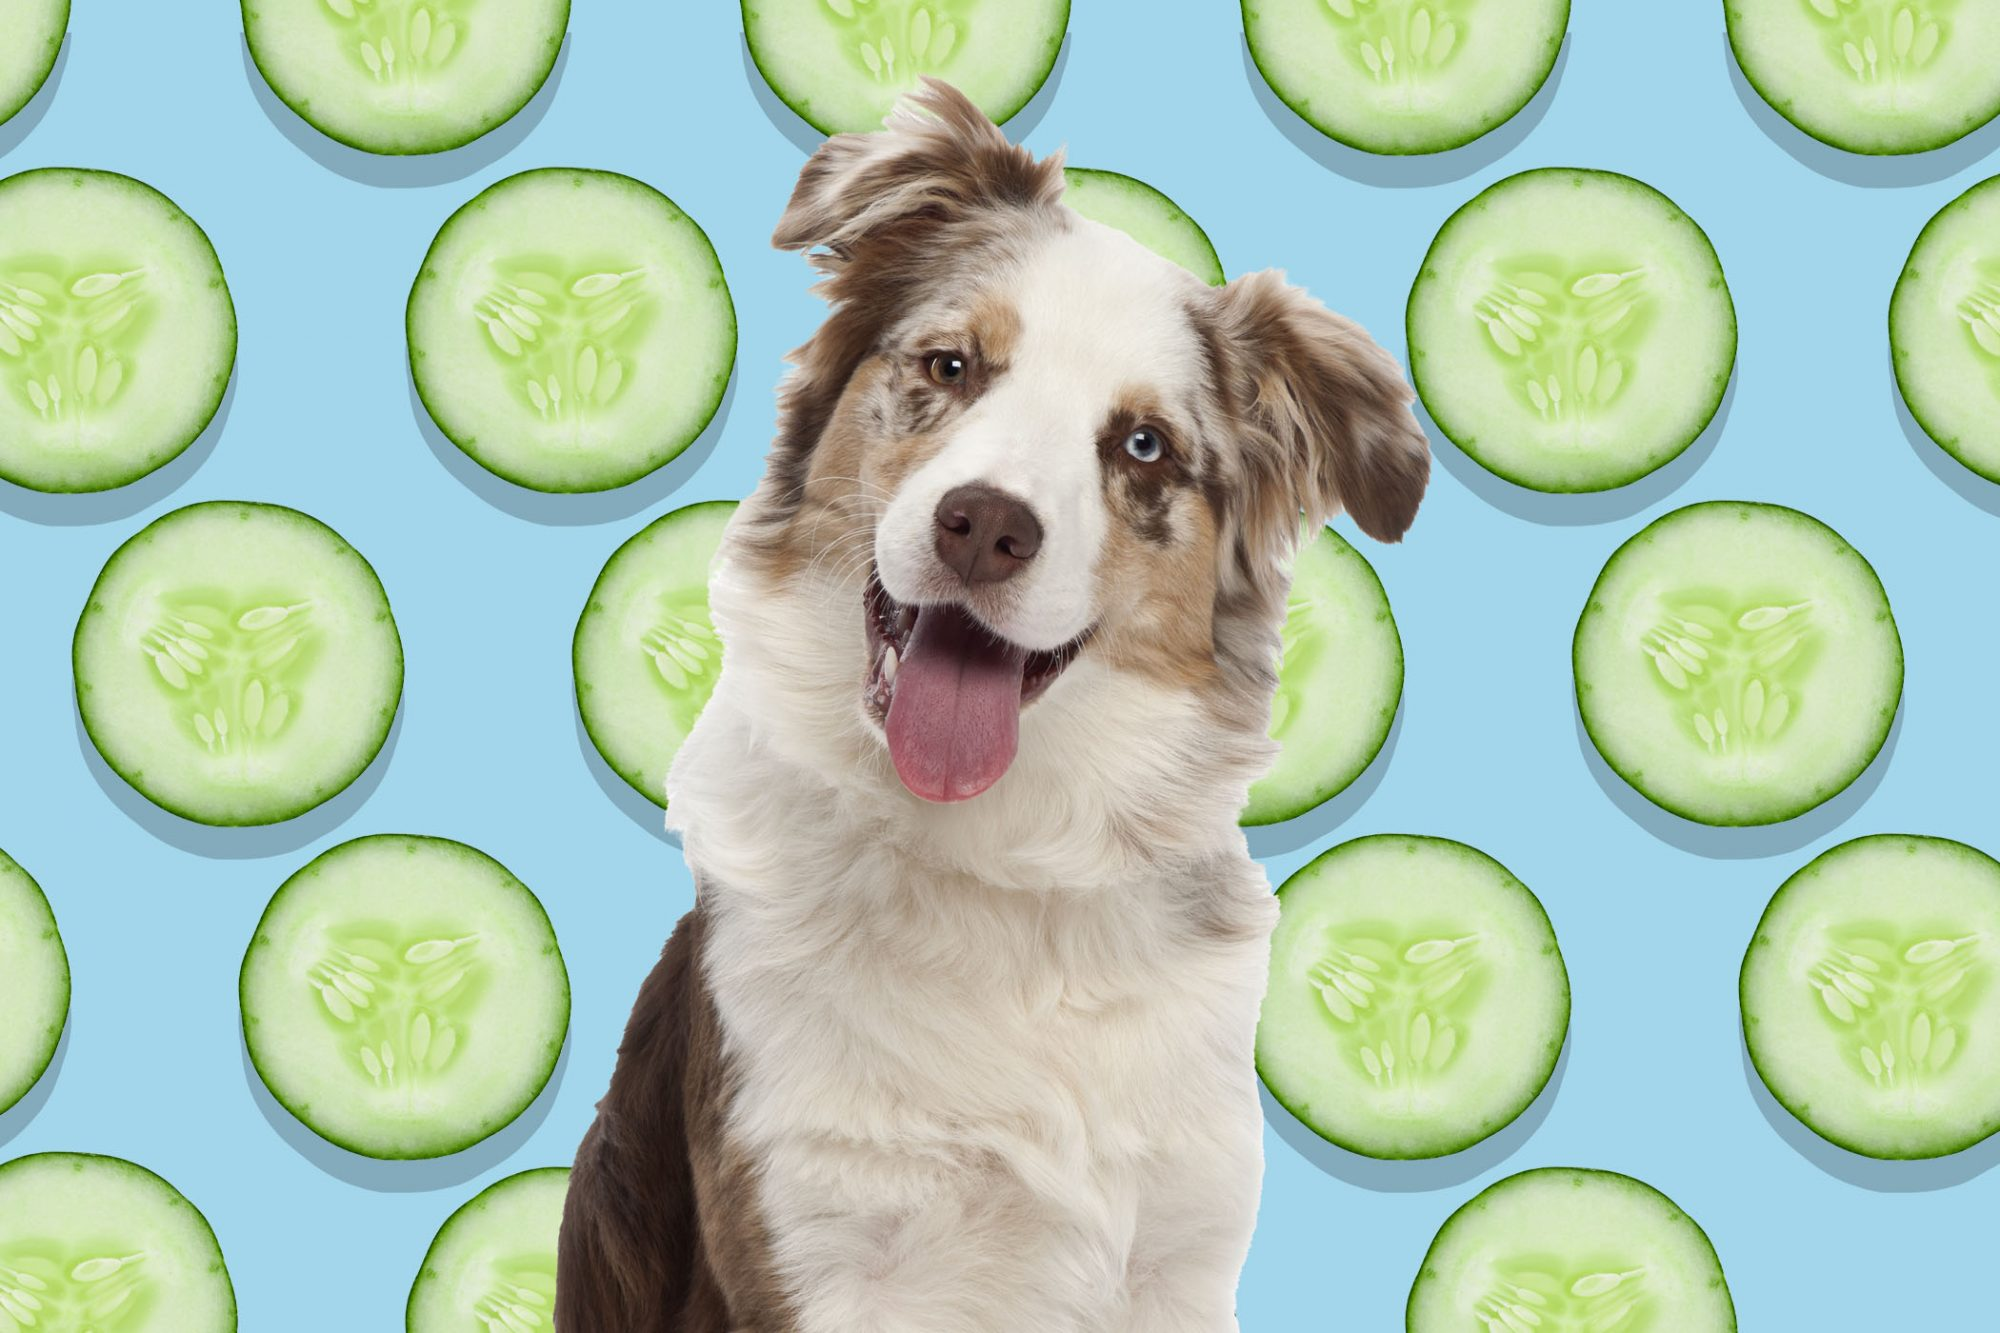 Portrait of dog in front of cucumbers background illustration